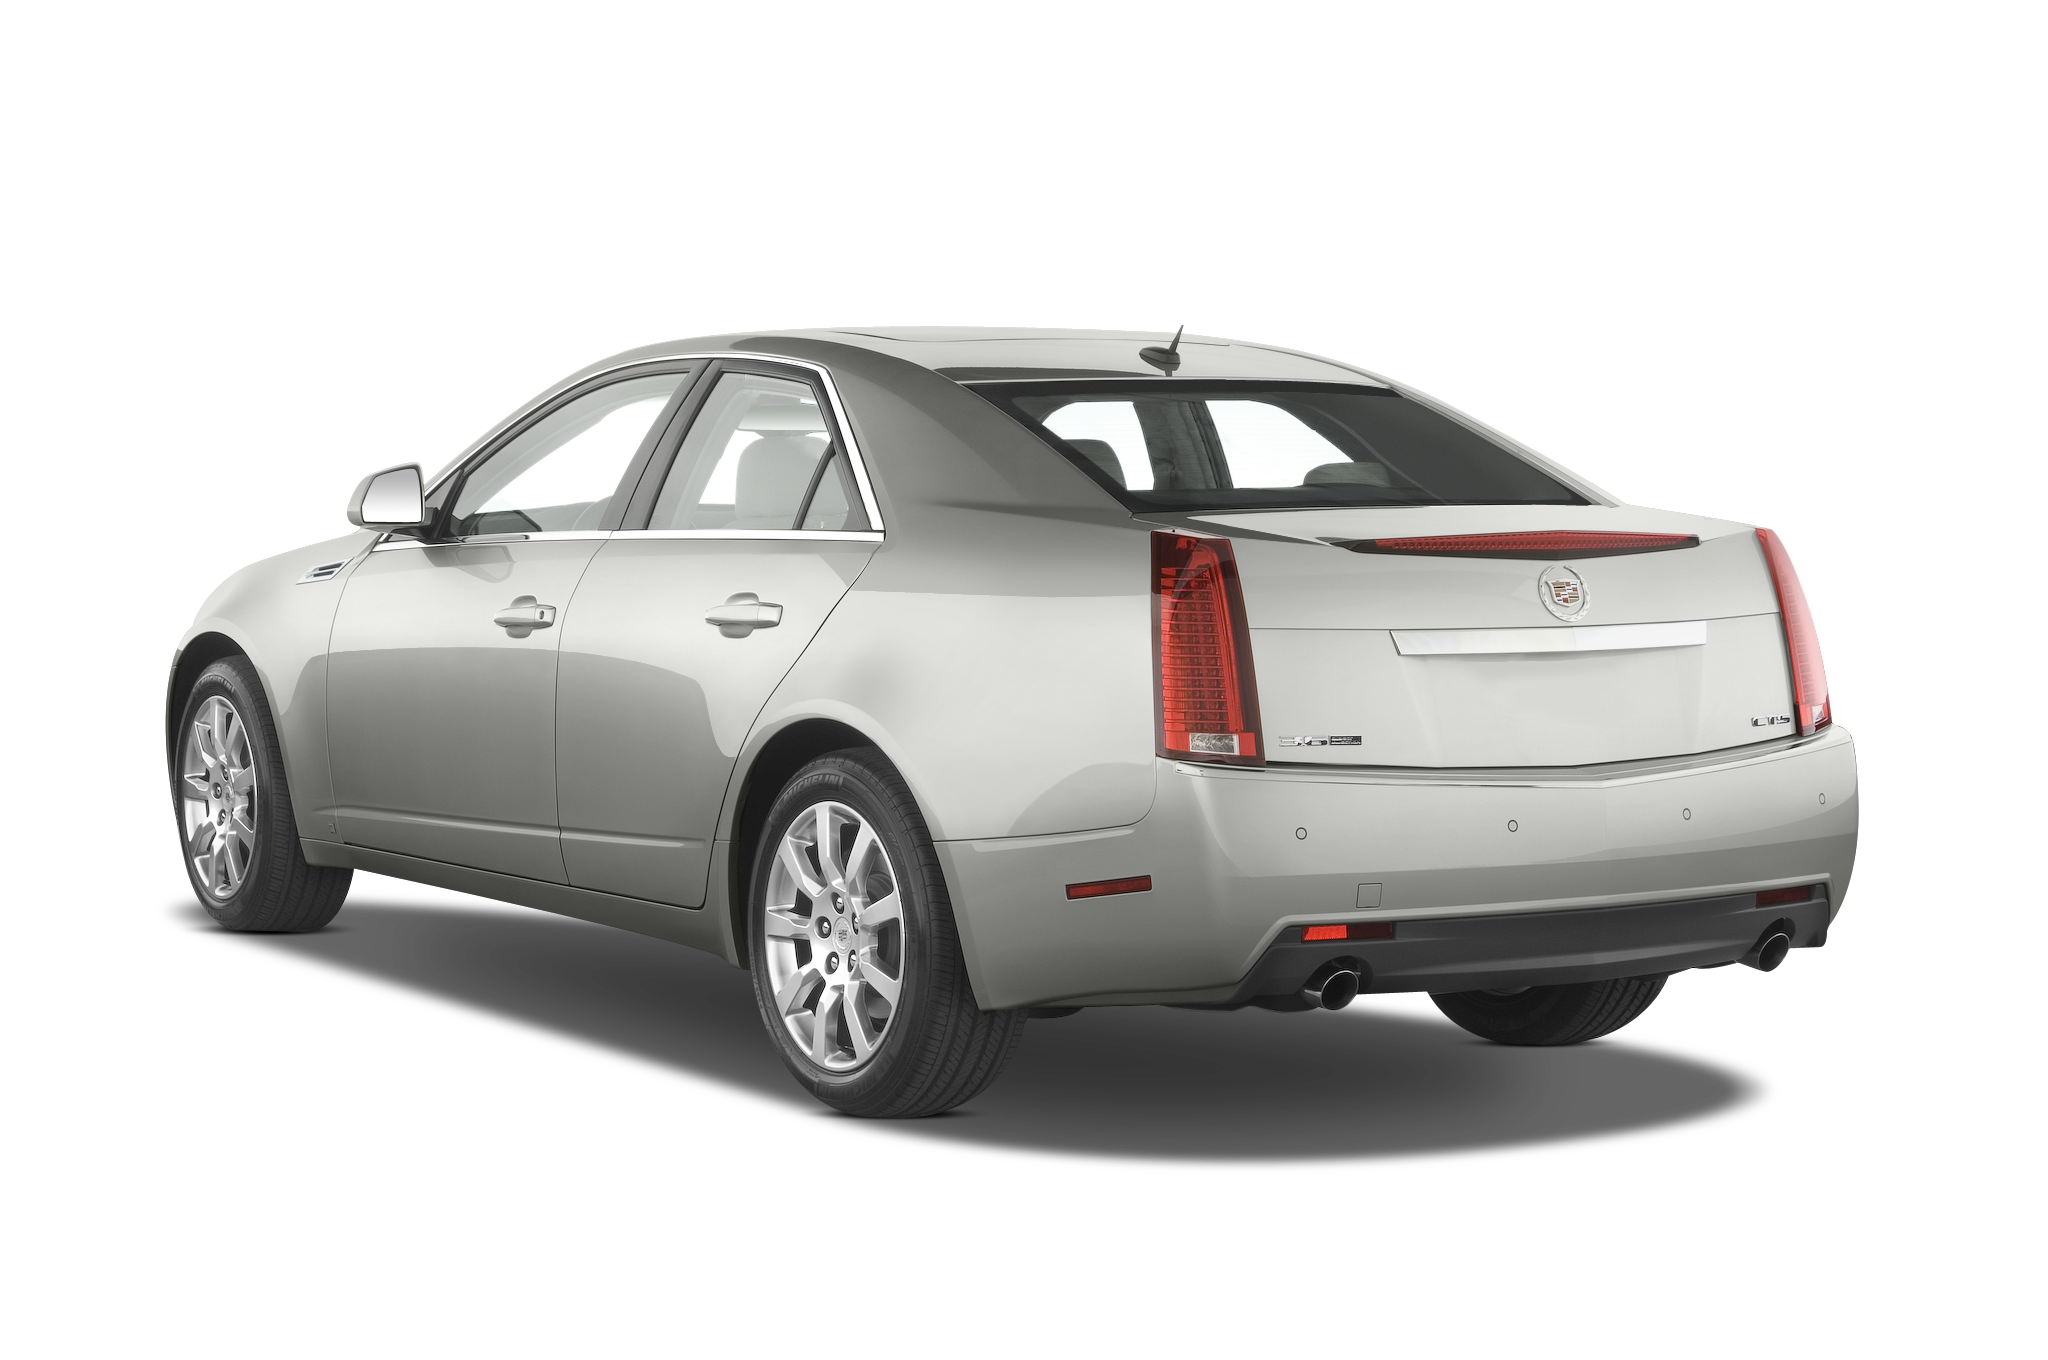 2010 cadillac cts coupe spied latest news reviews and features automobile magazine. Black Bedroom Furniture Sets. Home Design Ideas